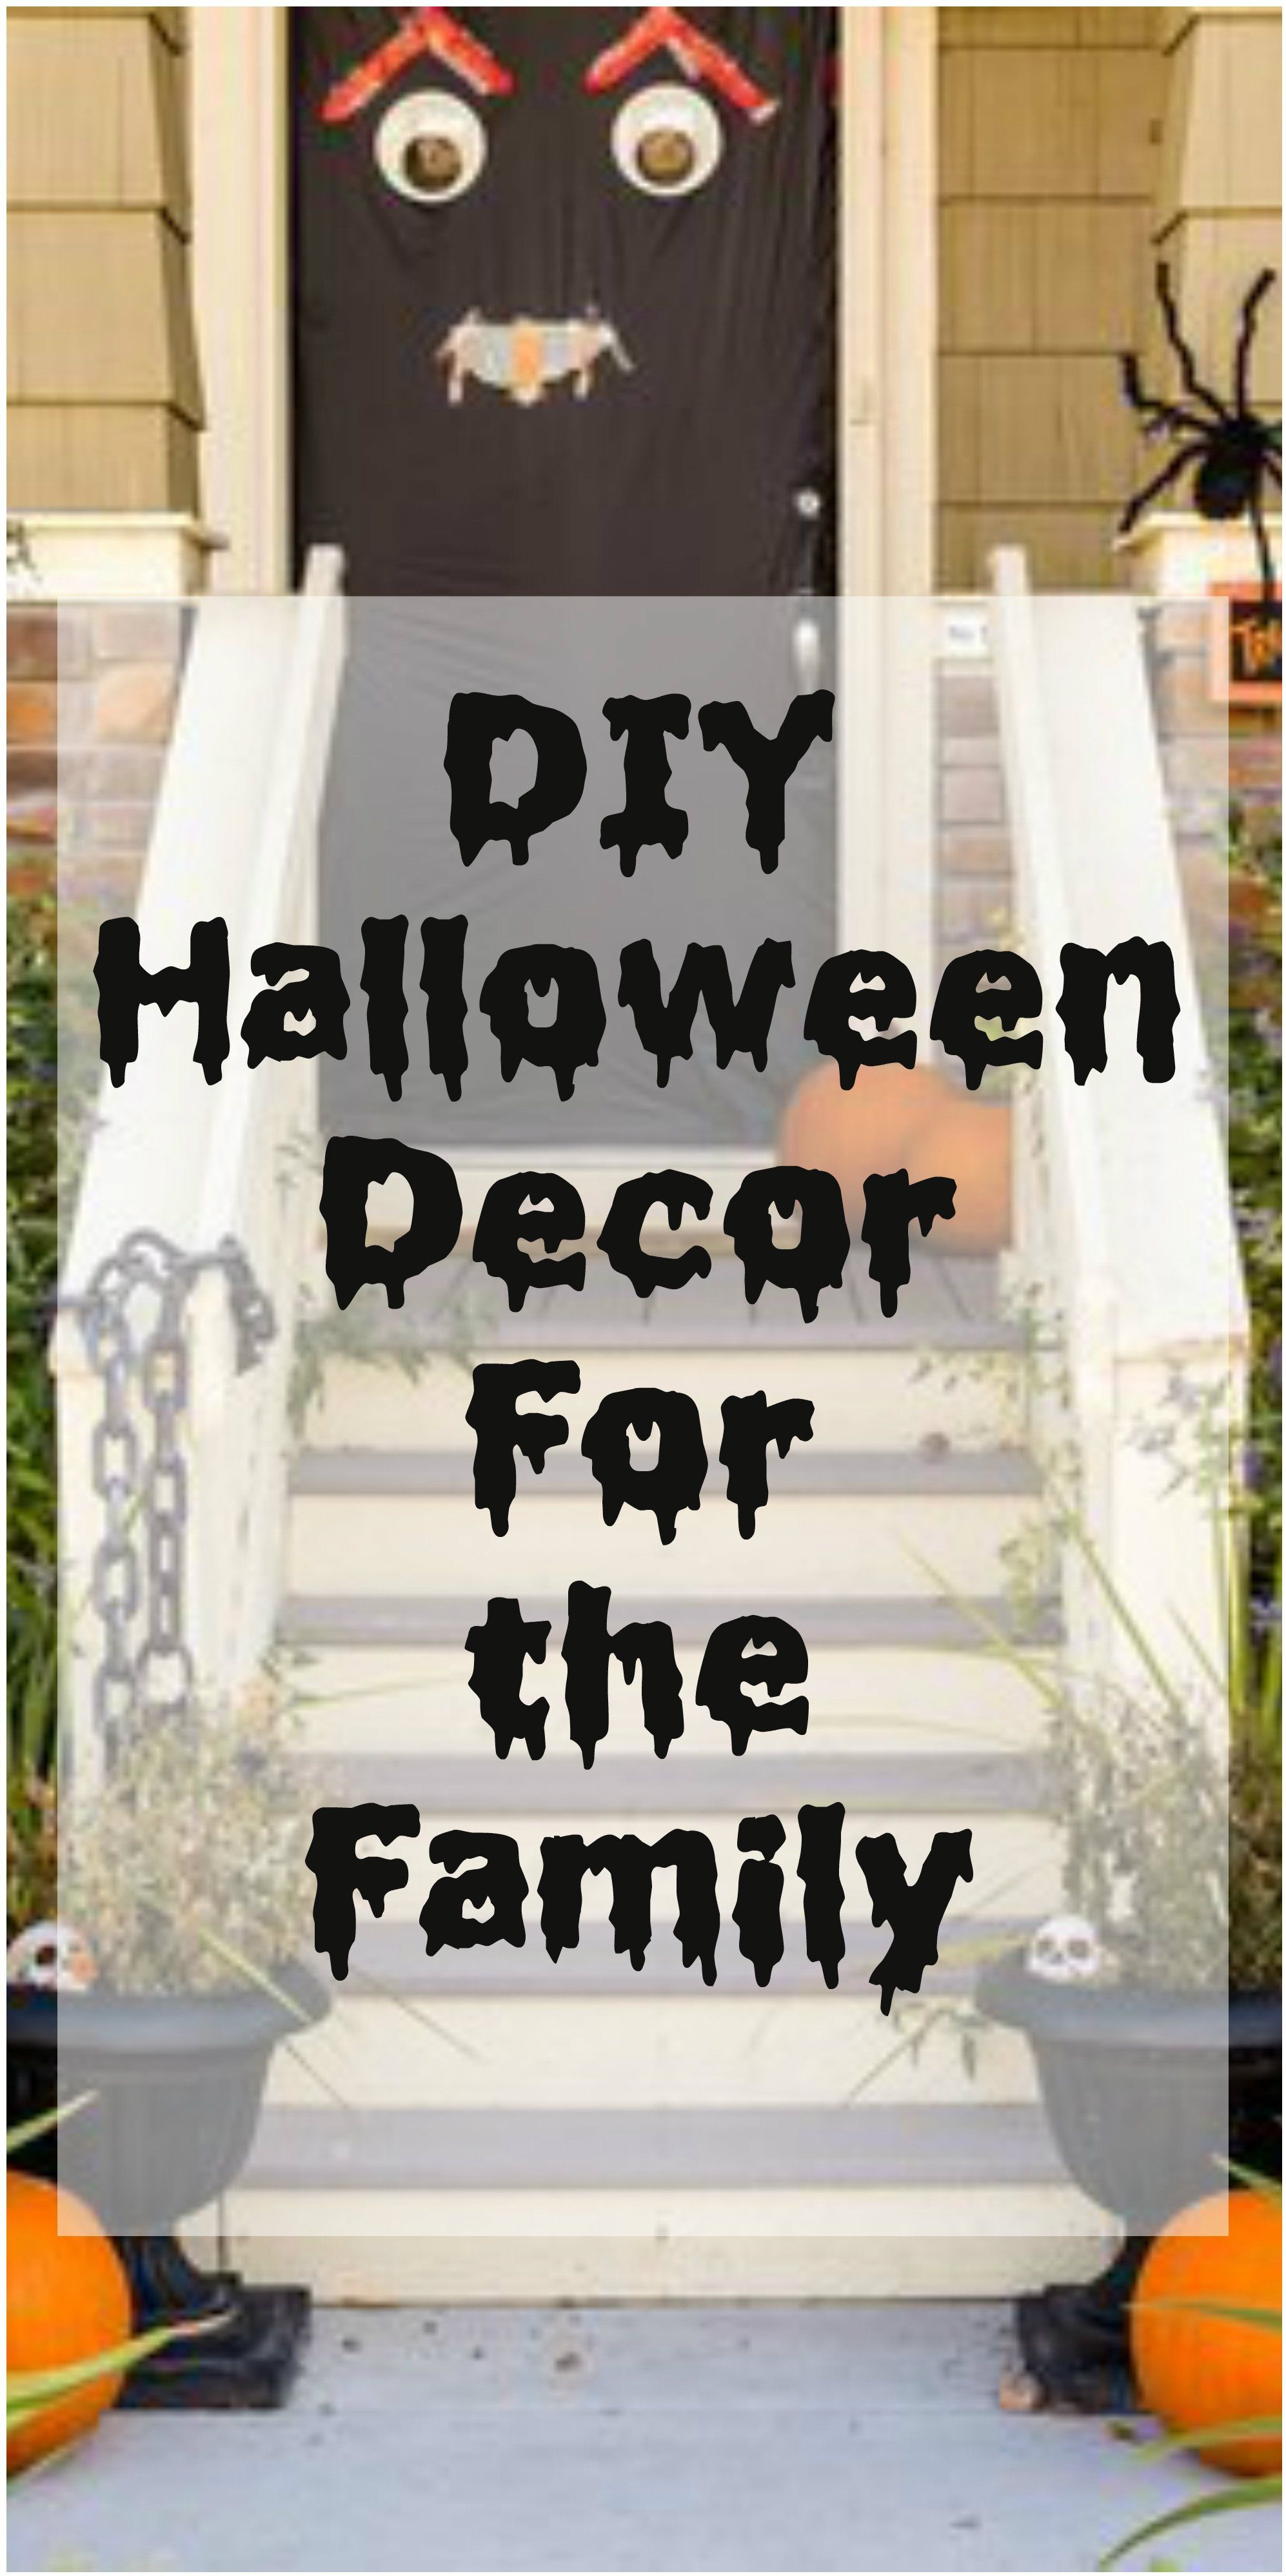 Cheap #halloweendecorations that would be fun for the whole family - Homemade Halloween Decorations